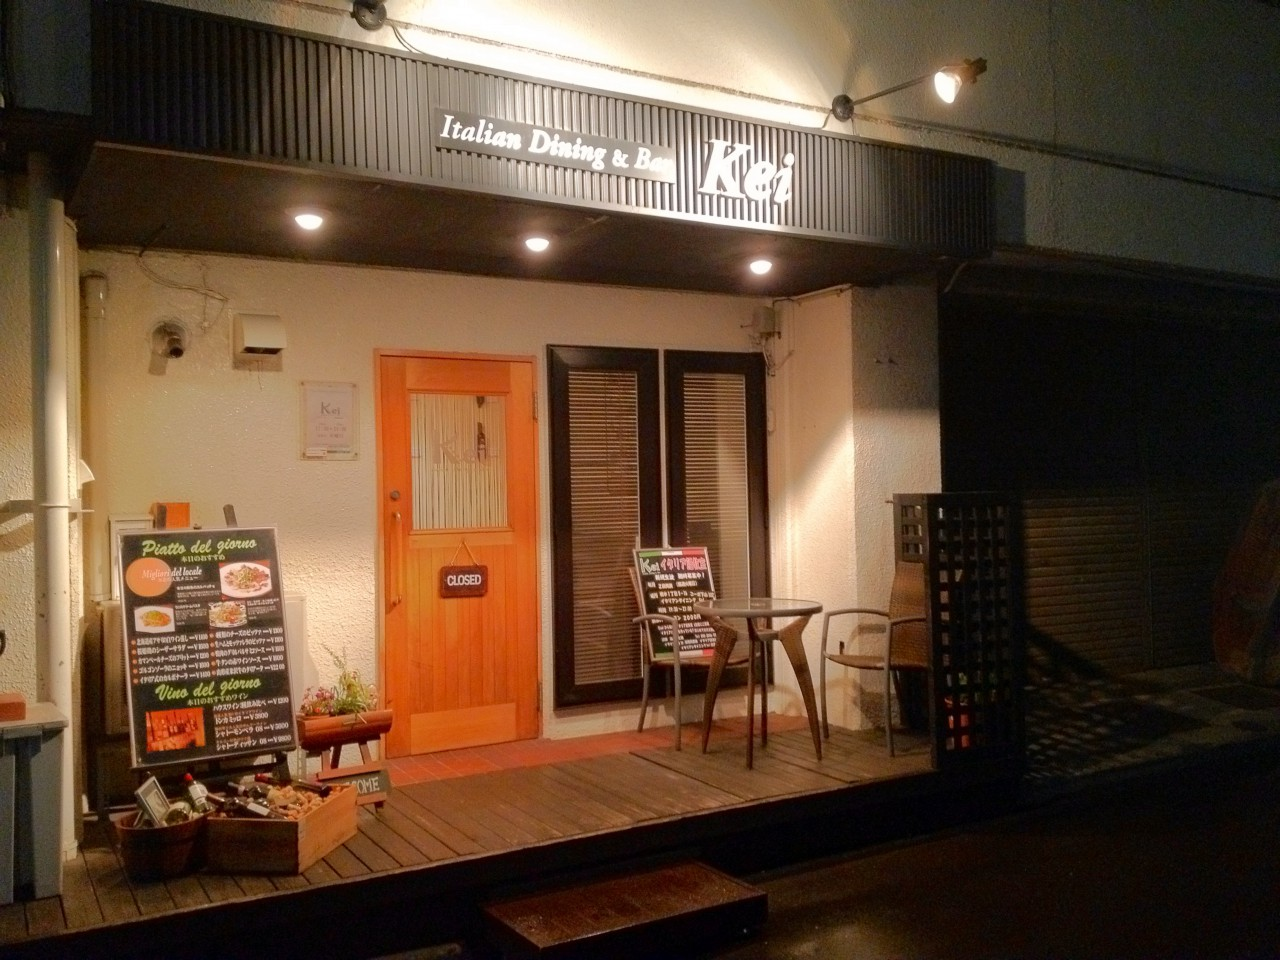 Italian dining & Bar 「Kei」